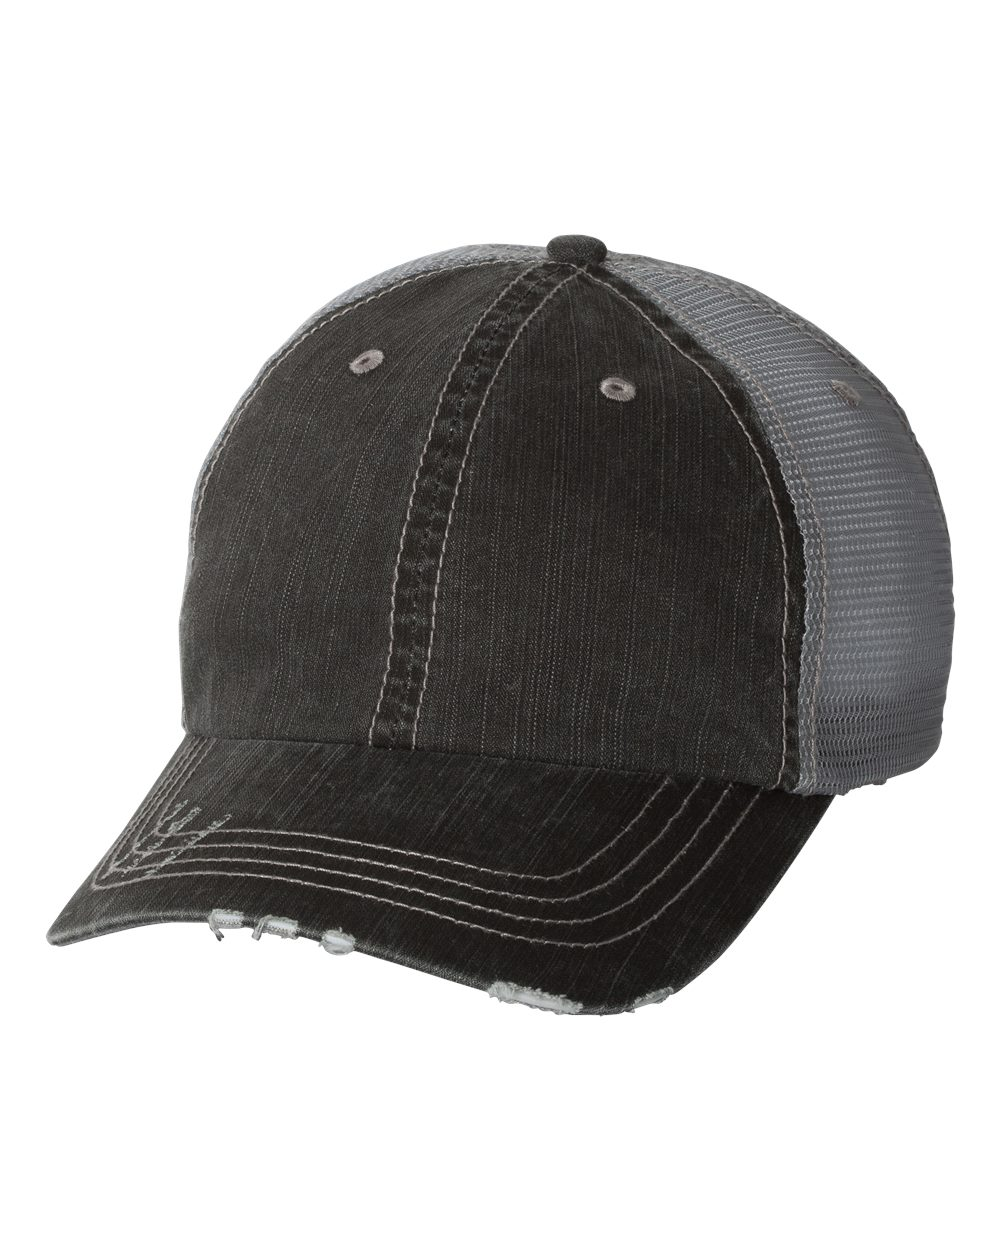 CHARCOAL GREY TRUCKER HAT FMWIB